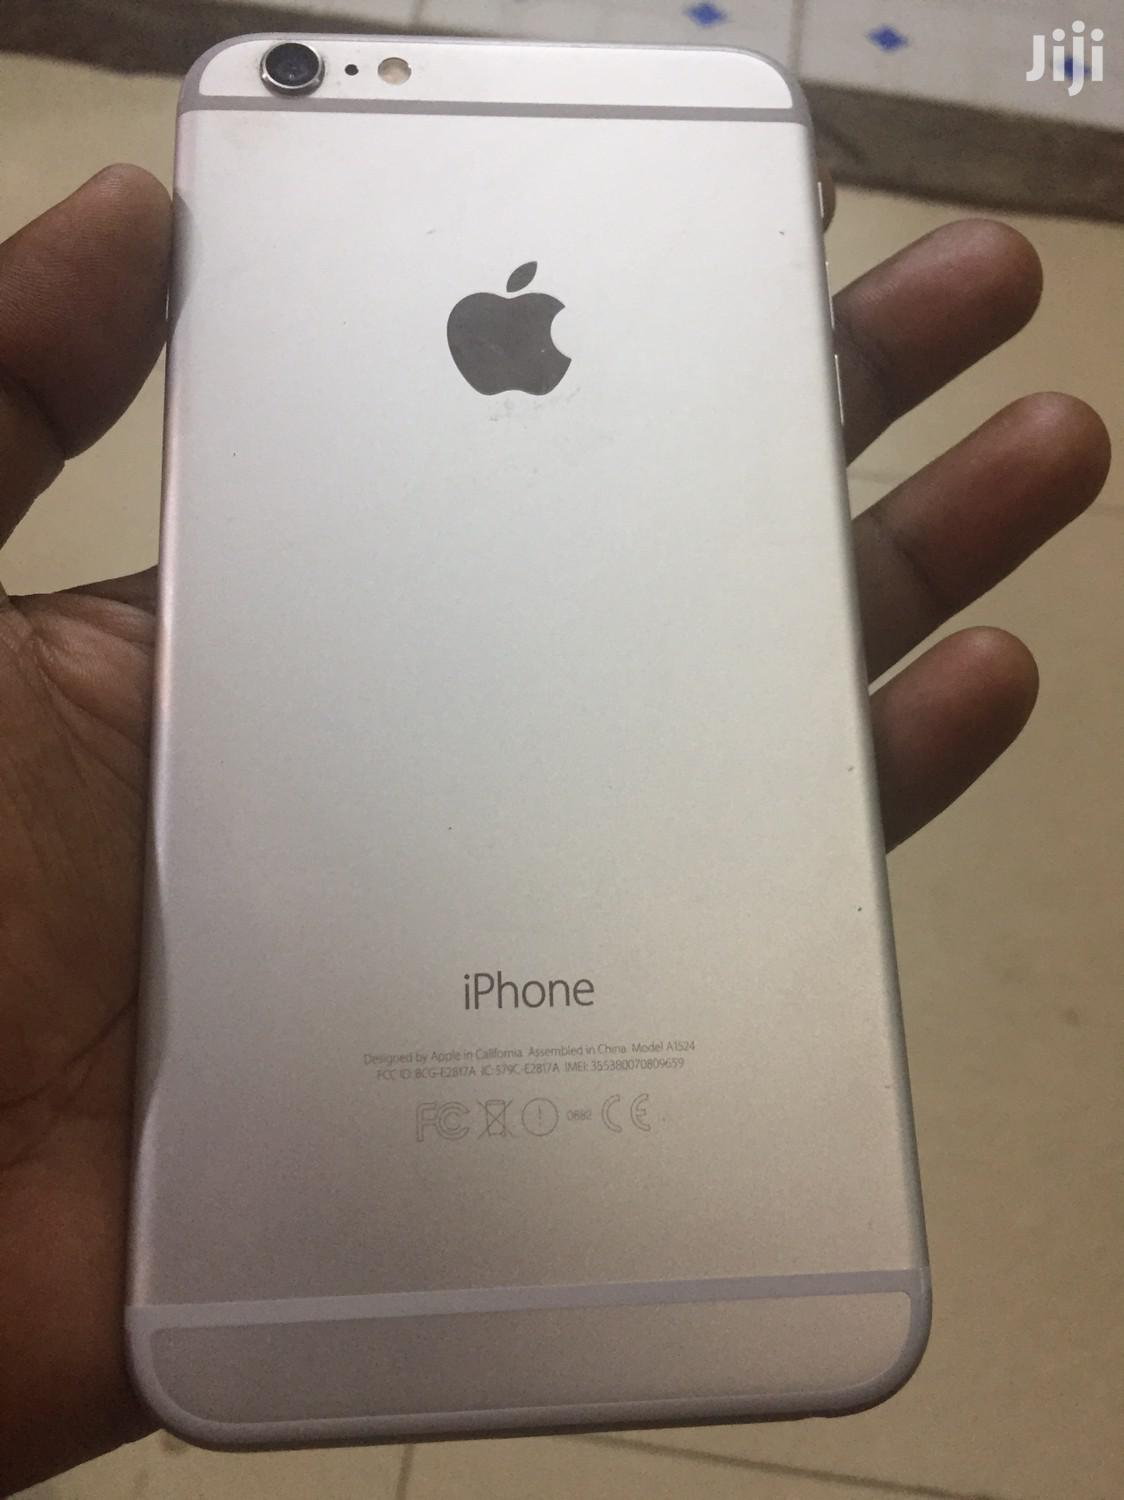 Apple iPhone 6 Plus 16 GB Silver | Mobile Phones for sale in Nairobi Central, Nairobi, Kenya